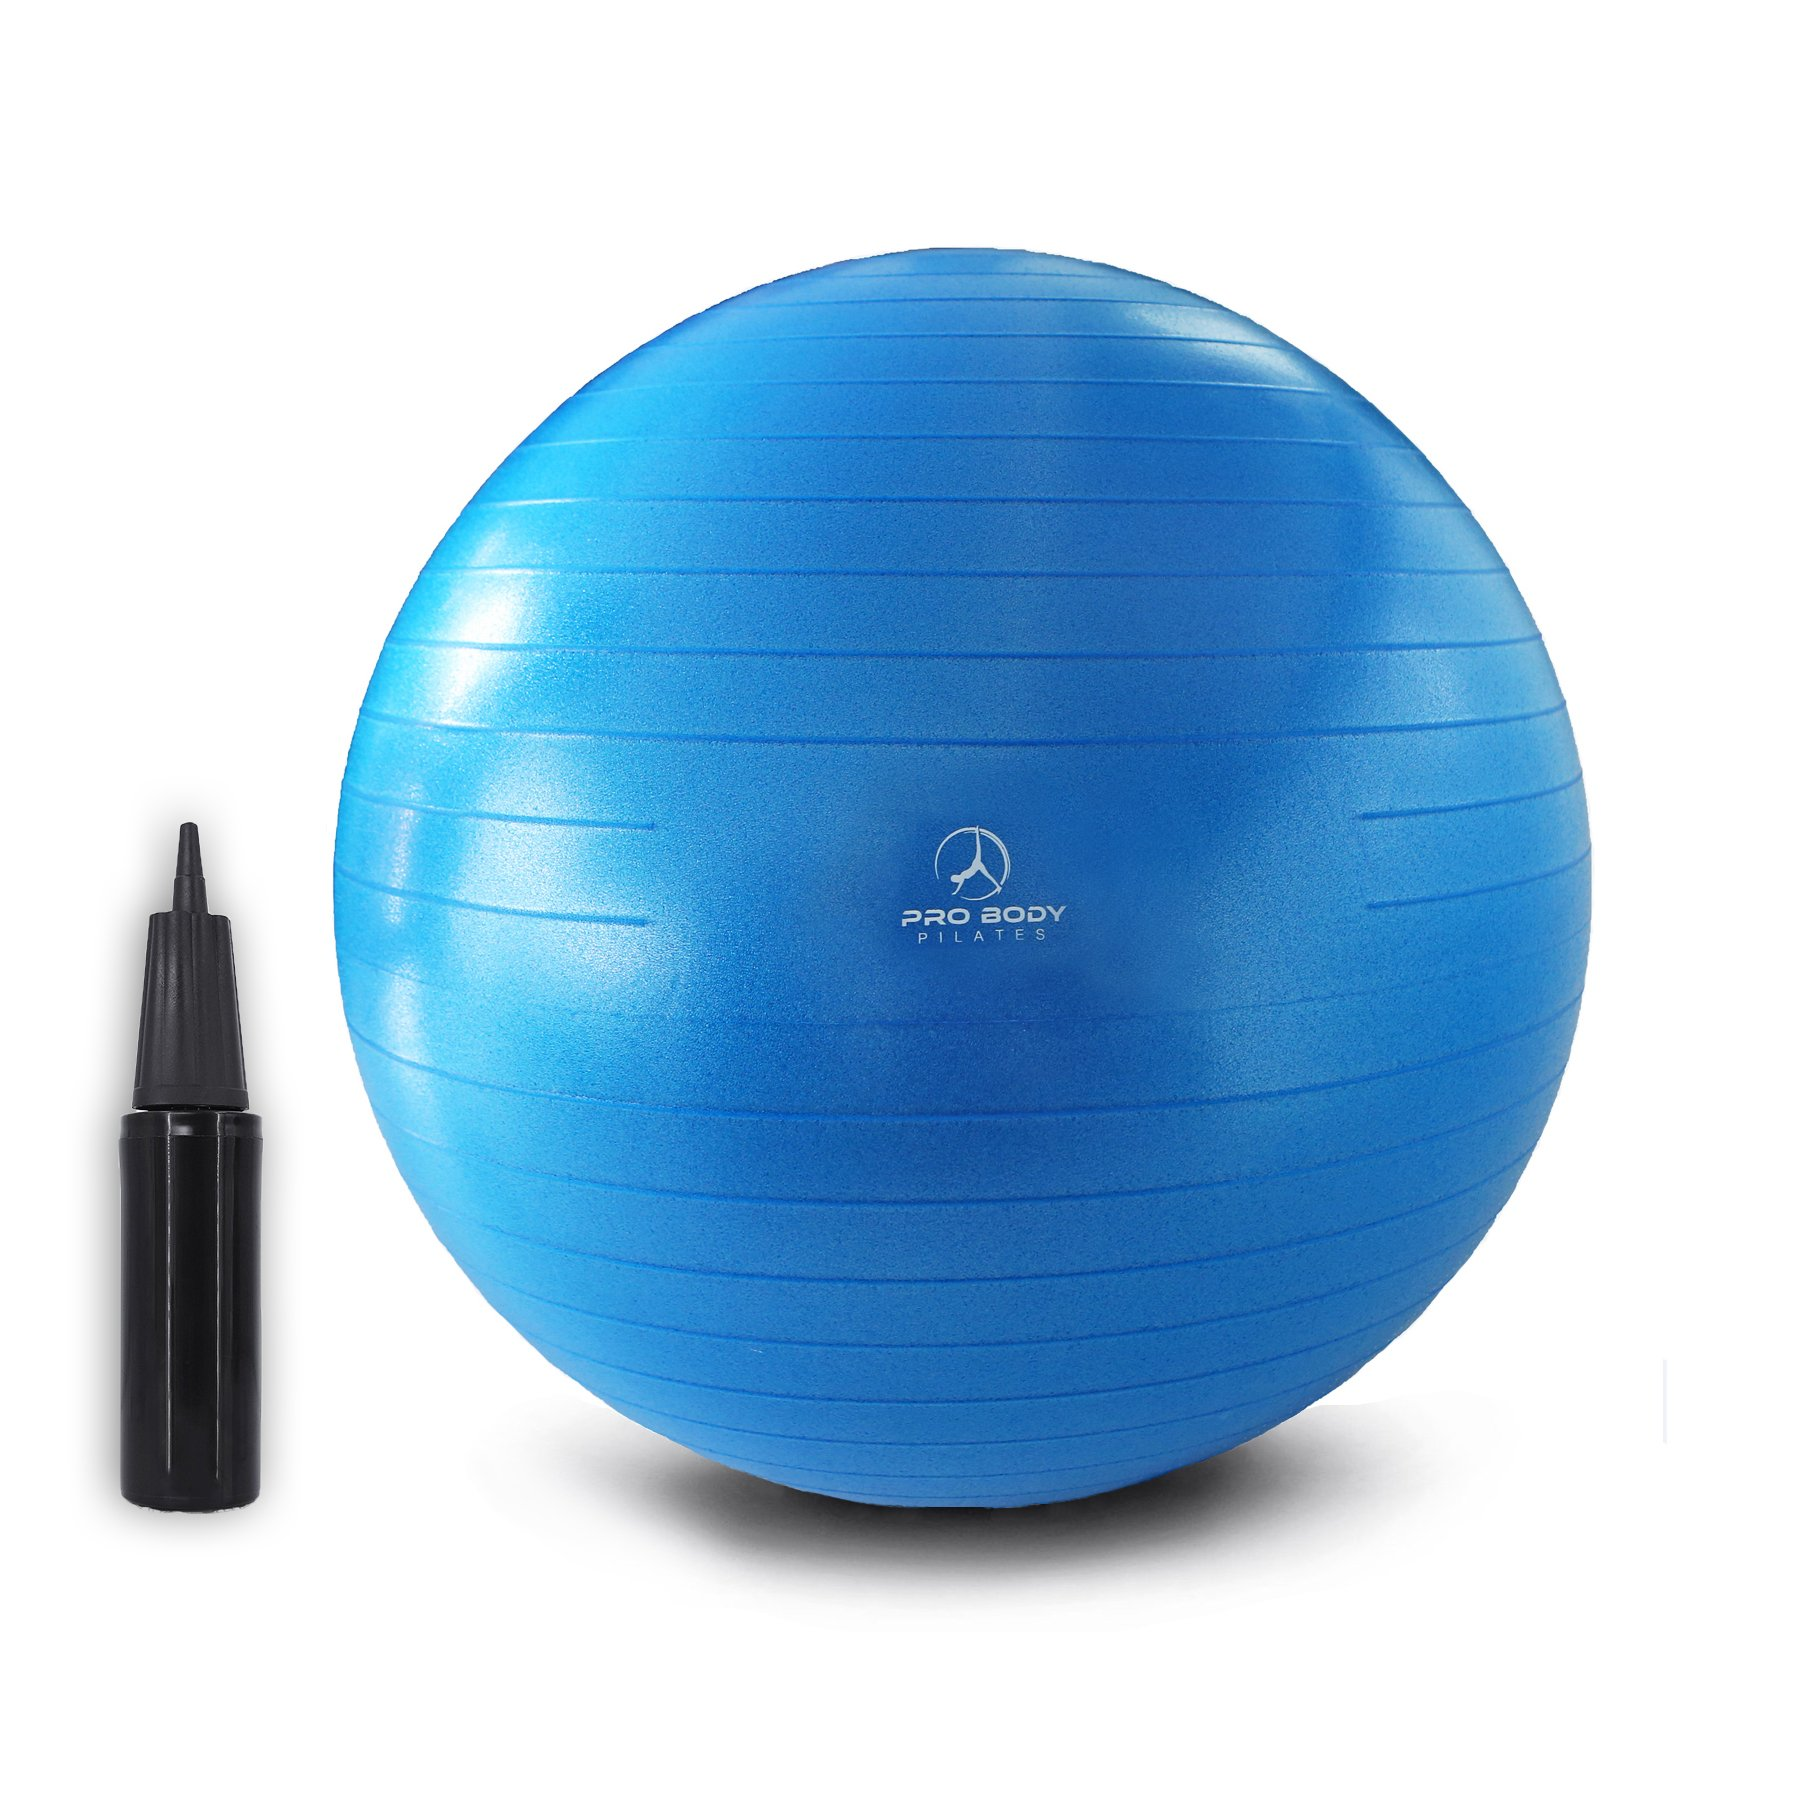 Exercise Ball - Professional Grade Anti-Burst Fitness, Balance Ball for Pilates, Yoga, Birthing, Stability Gym Workout Training and Physical Therapy (Blue, 55cm) by ProBody Pilates (Image #1)